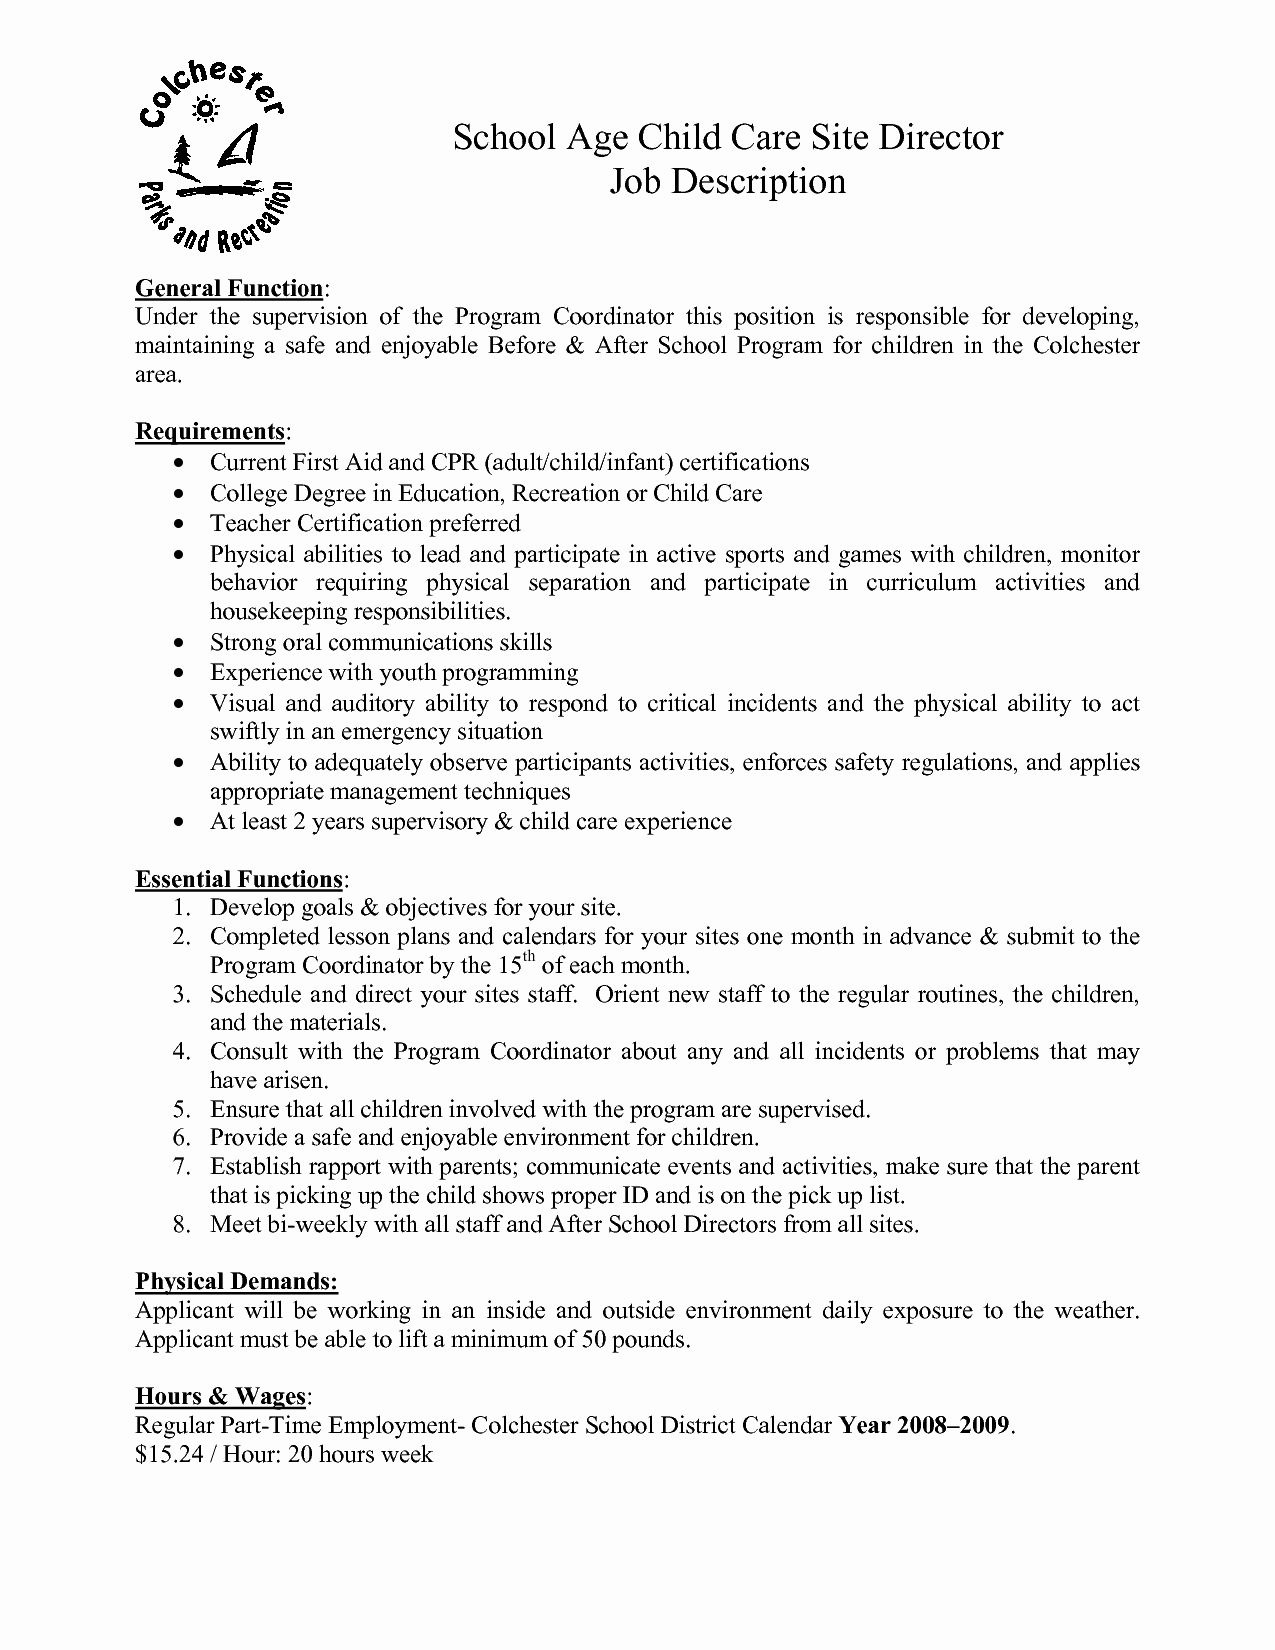 20 Child Care Director Resume in 2020 (With images) Job